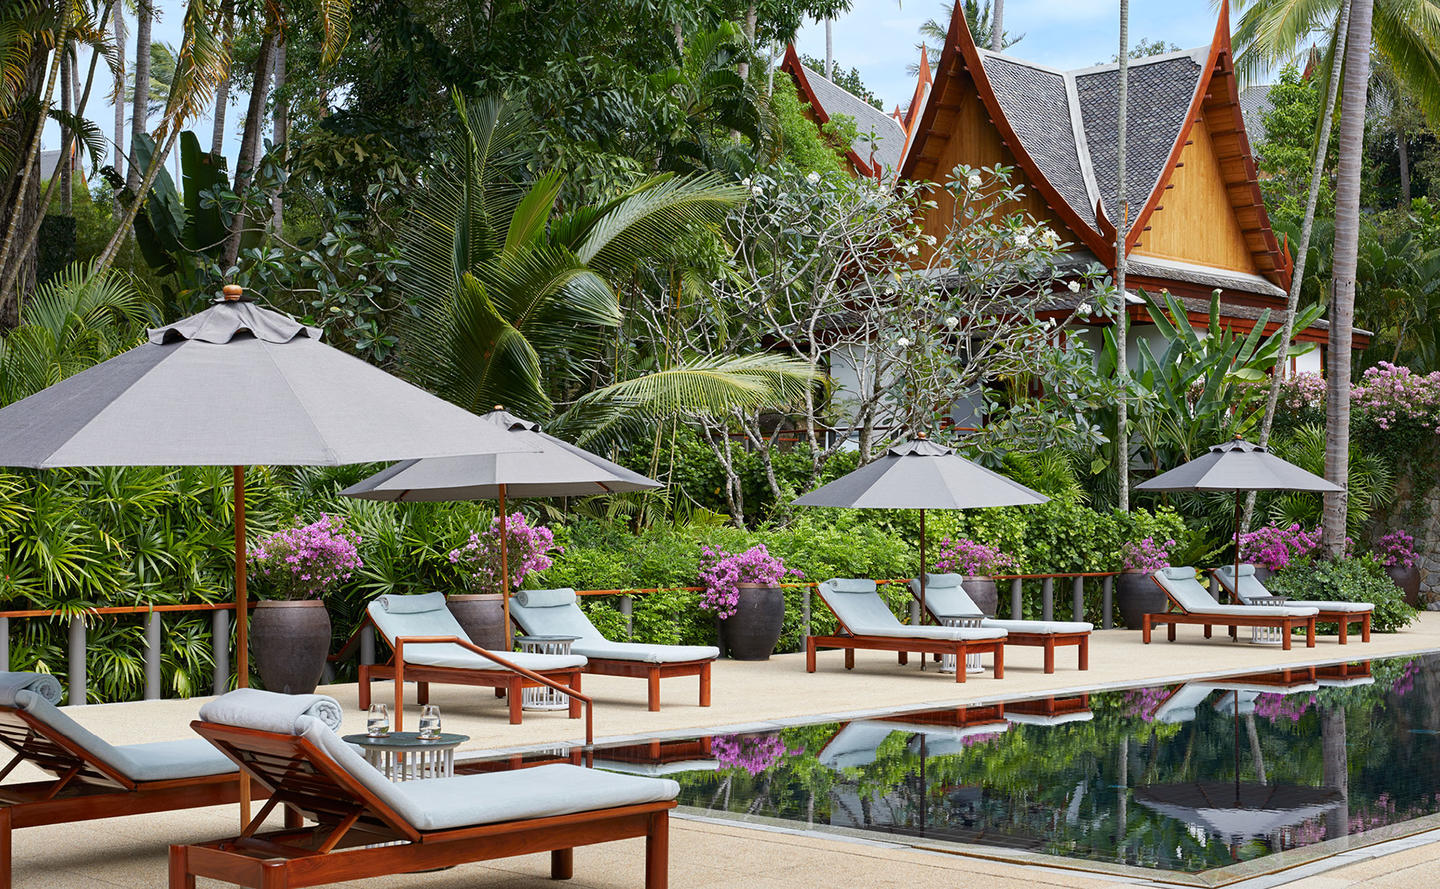 Swimming Pool & Terrace, Four-Bedroom Garden Villa, Amanpuri, Thailand